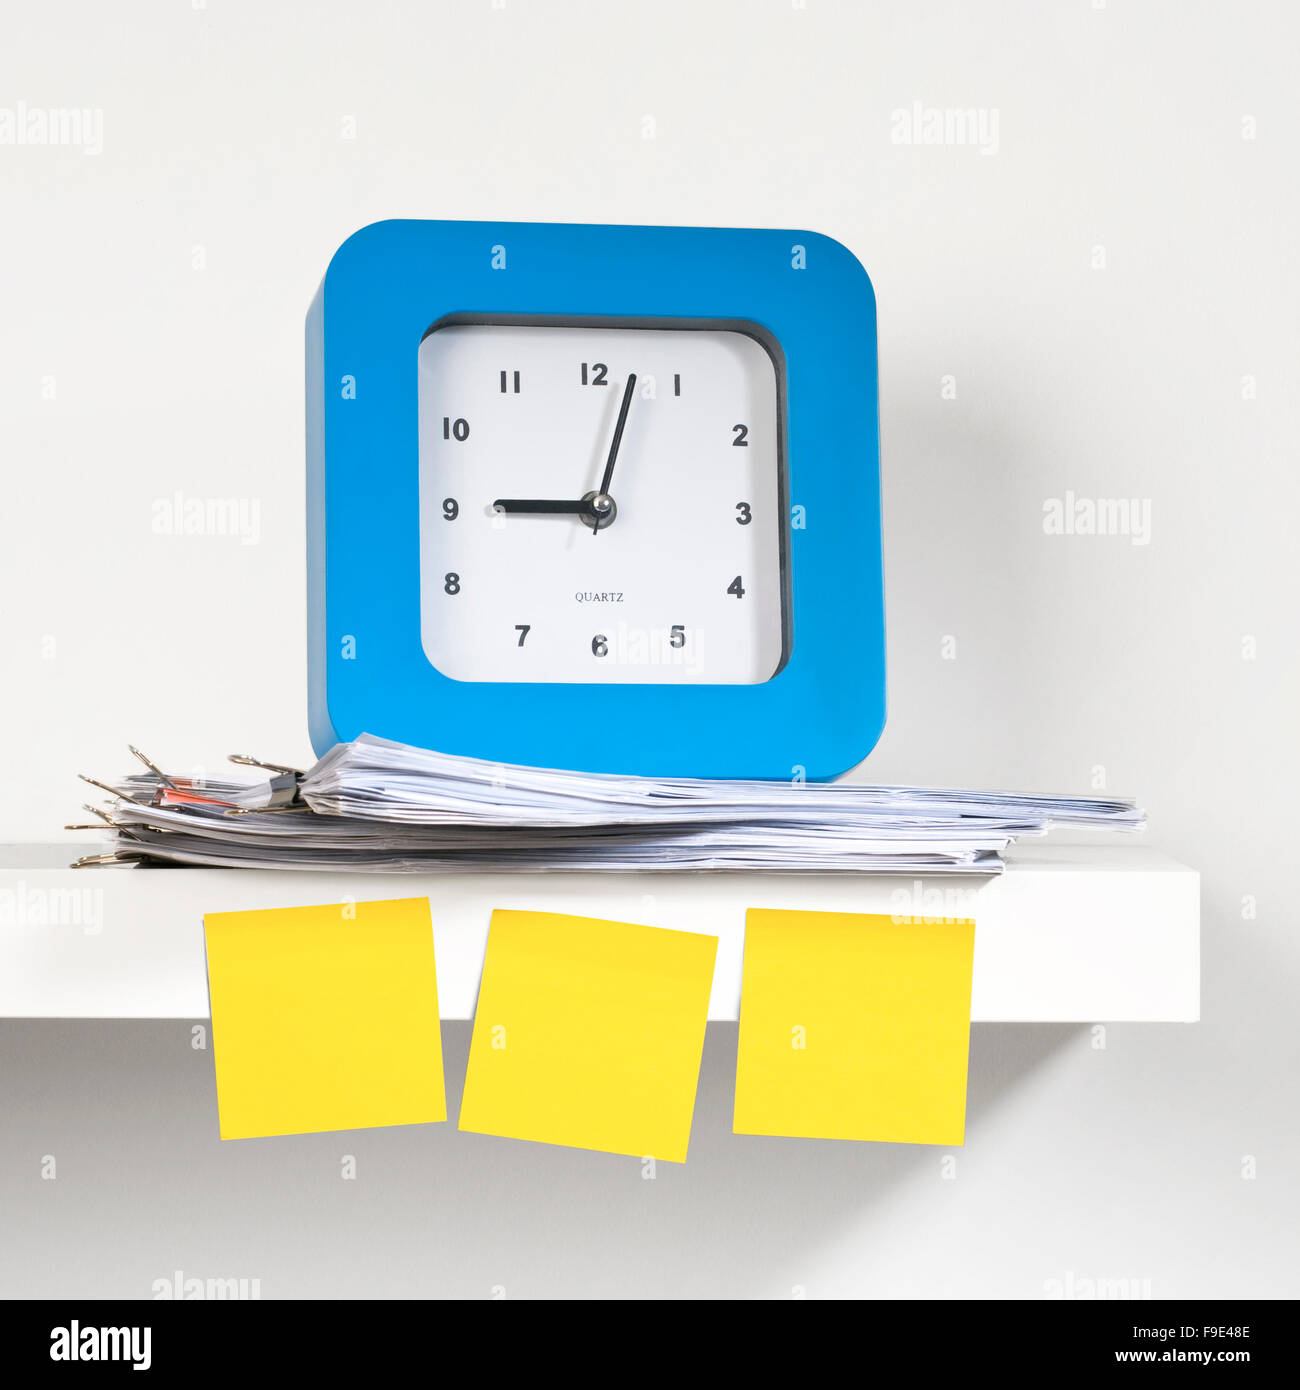 Many sticky notes stuck on the clock. Stock Photo